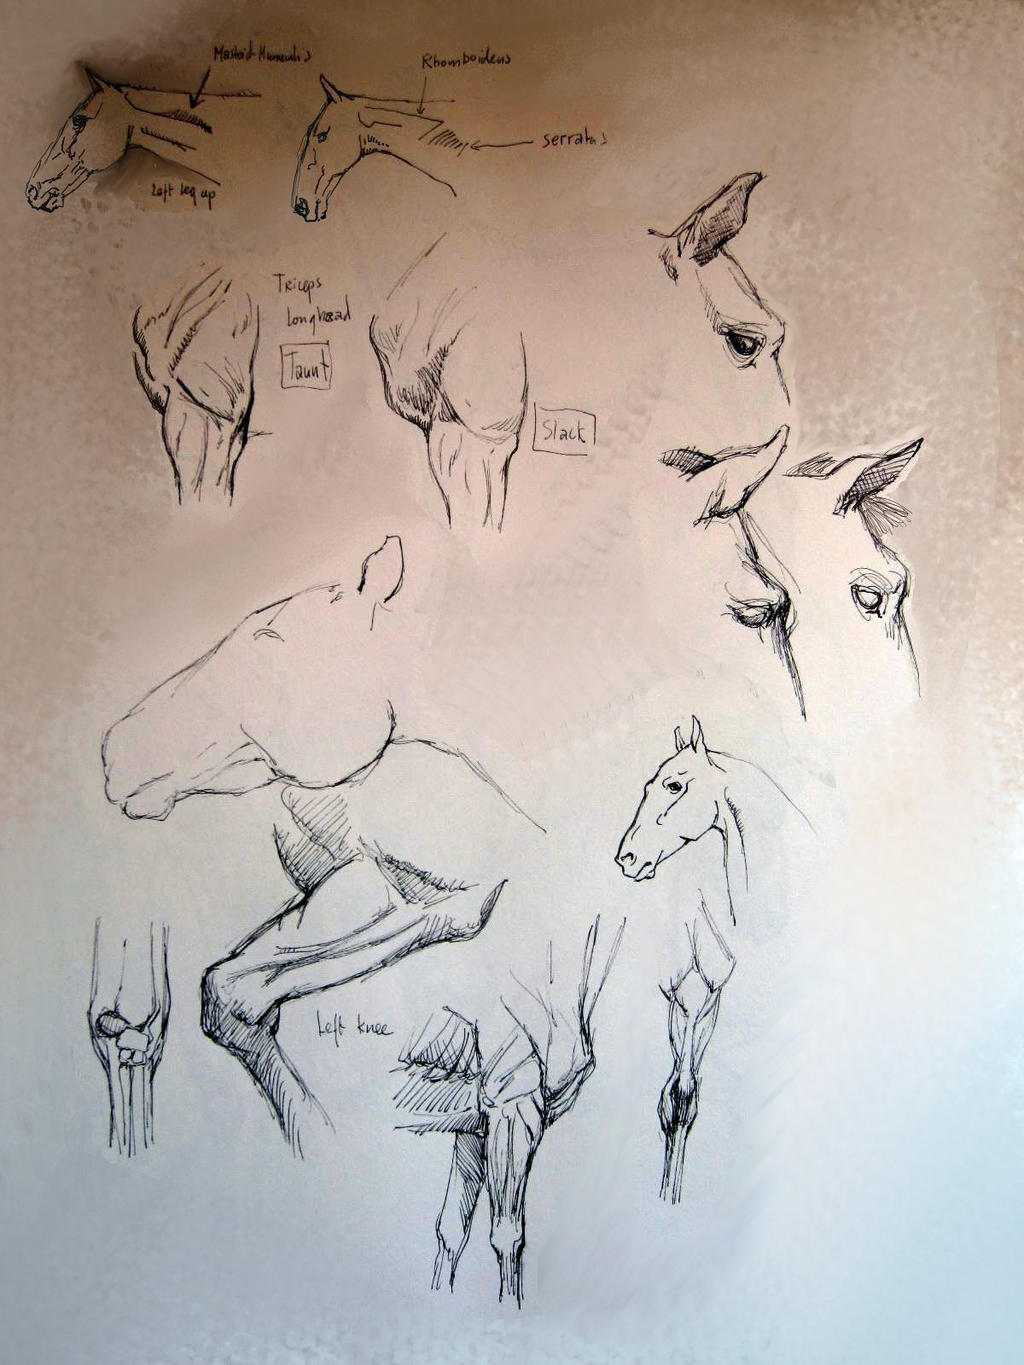 horses anatomy essay Hey i was looking up horse anatomy and decided to look at this i  i however would never claim to know everything about horses, and any good horse person would .